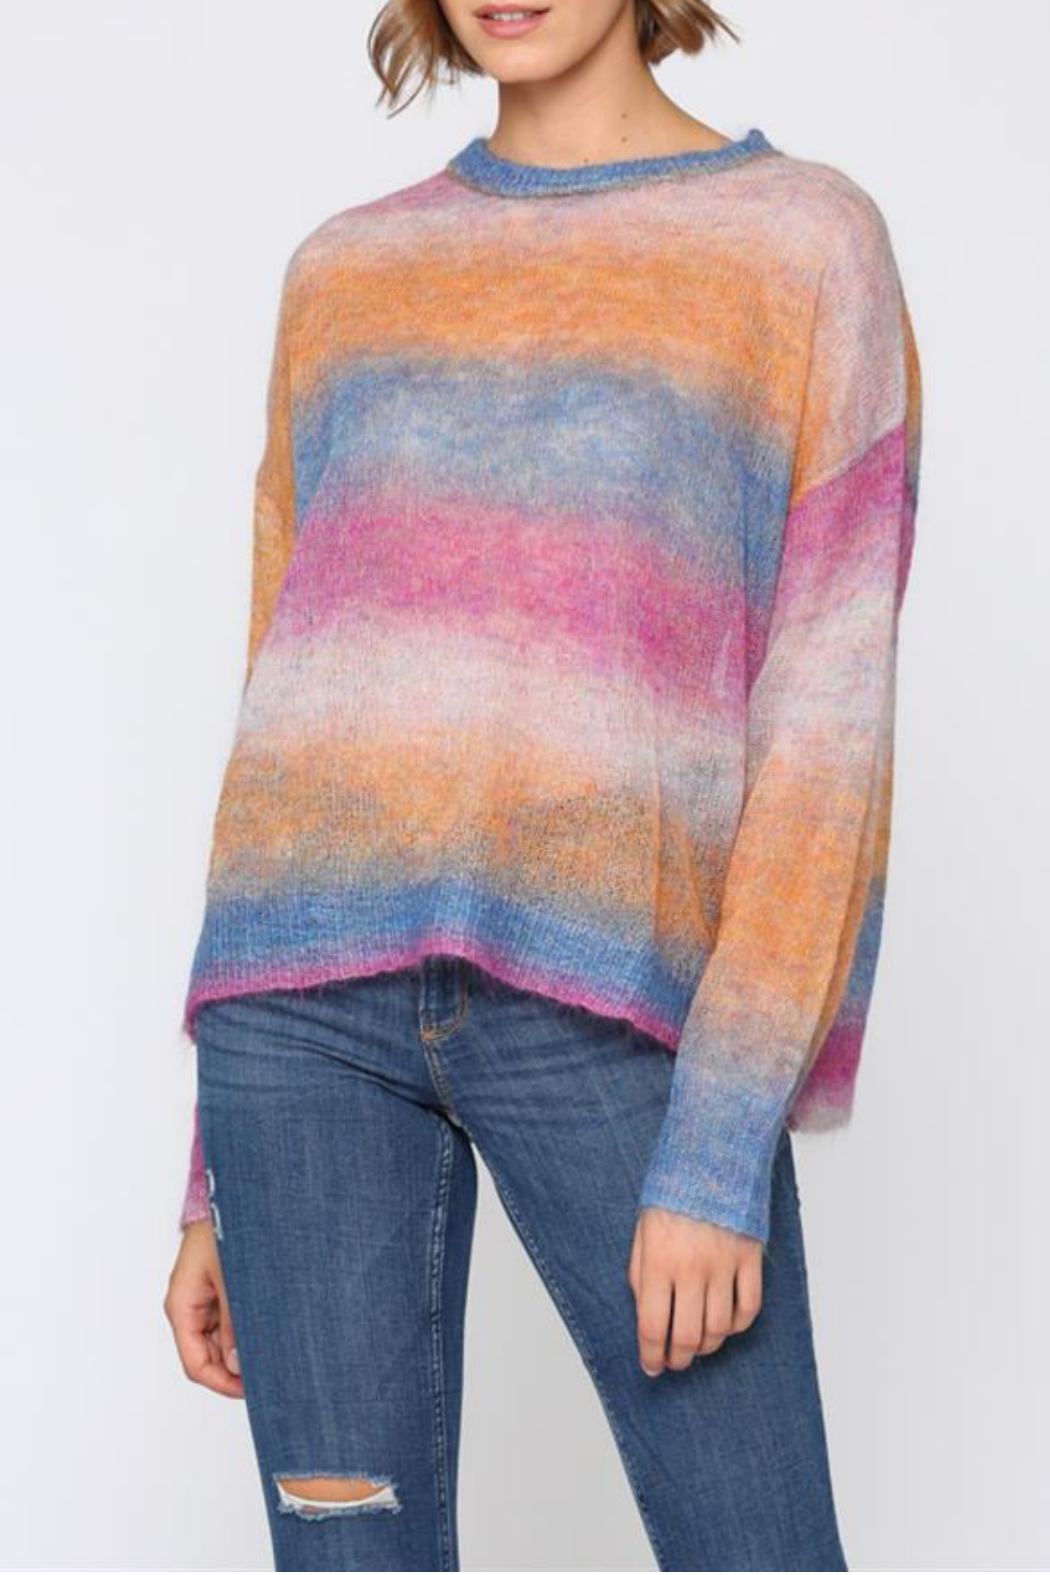 Fate Multi colored, light weight sweater - Main Image